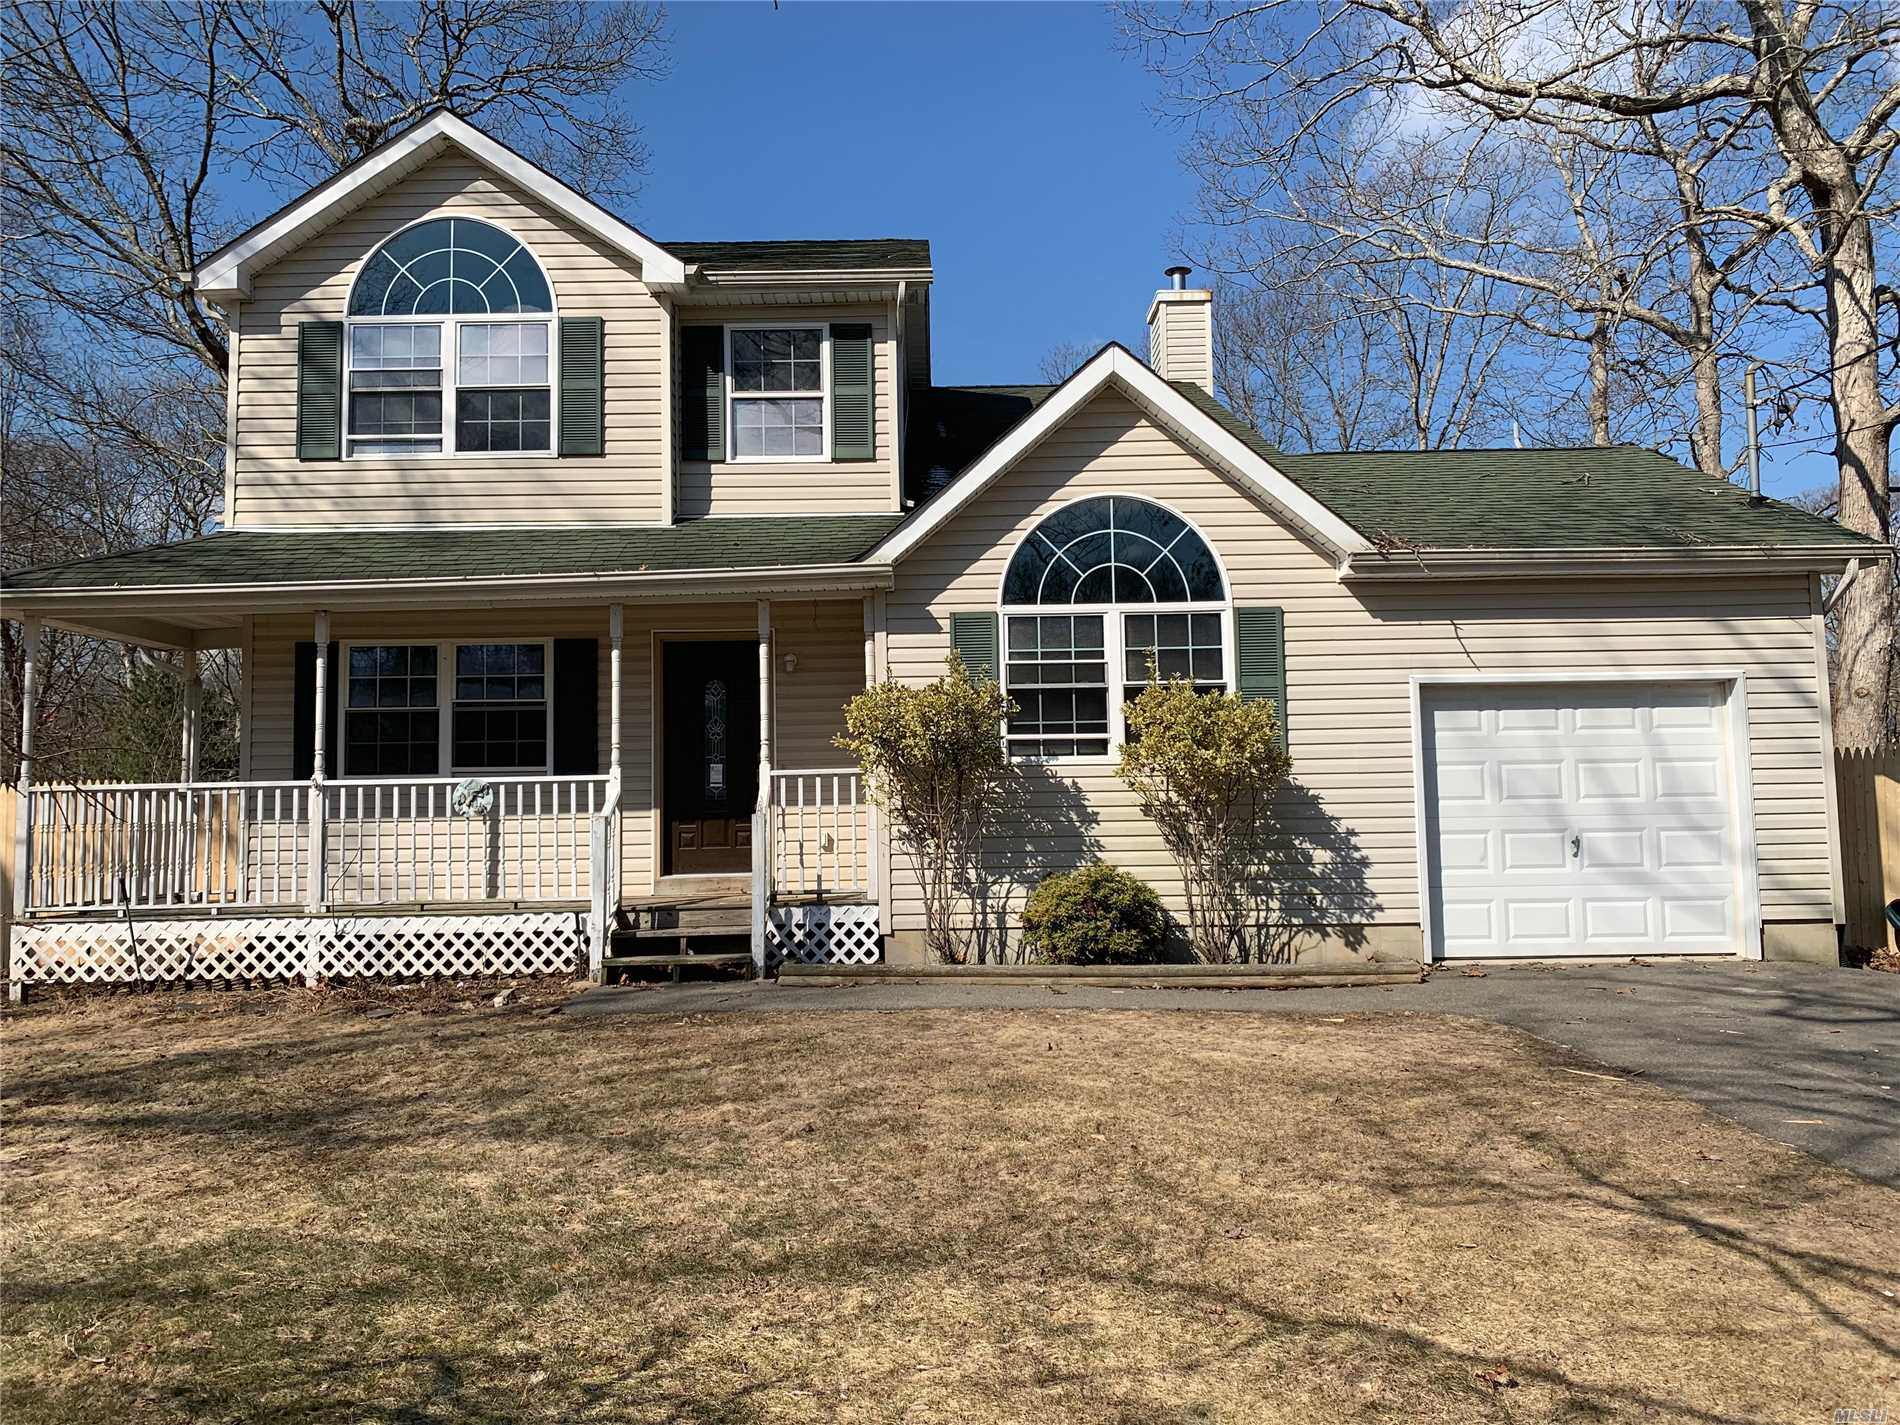 Large Colonial with New Kitchen, Beautiful Ceilings, New Baths, Master Bedrooms w/Master Bath, 0ne Car Garage, Large Backyard Great For Entertainment.